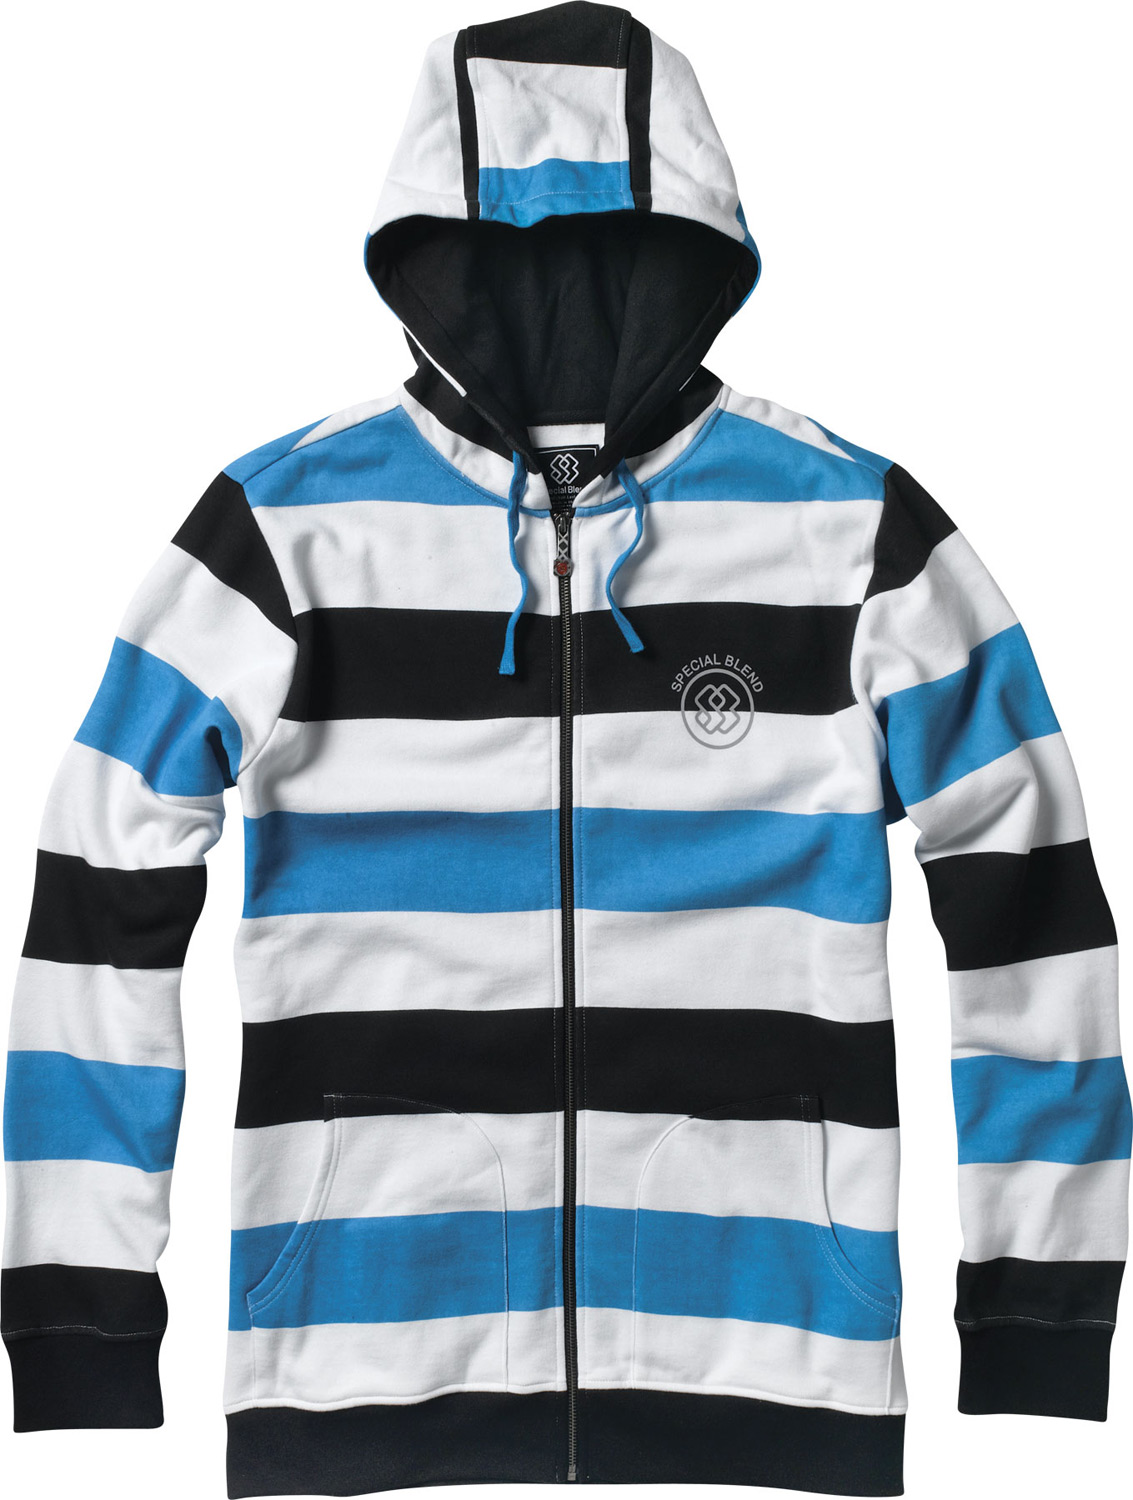 Key Features of the Special Blend Proof Hoodie: 80% cotton 20% polyester, 300 Gms. Printed stripe fleece - $41.95